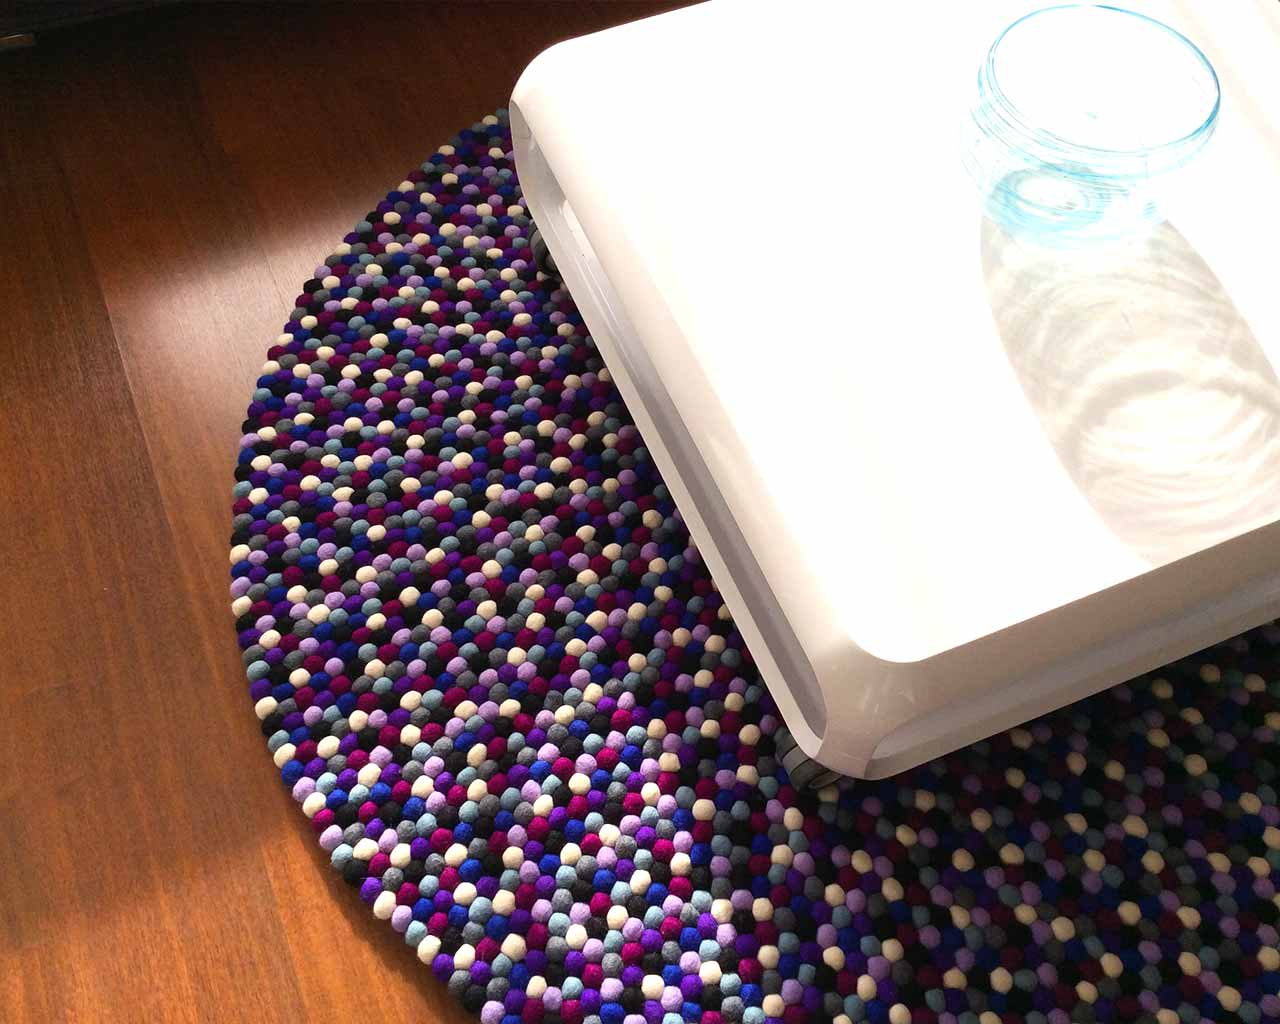 white table round purple felt ball carpet